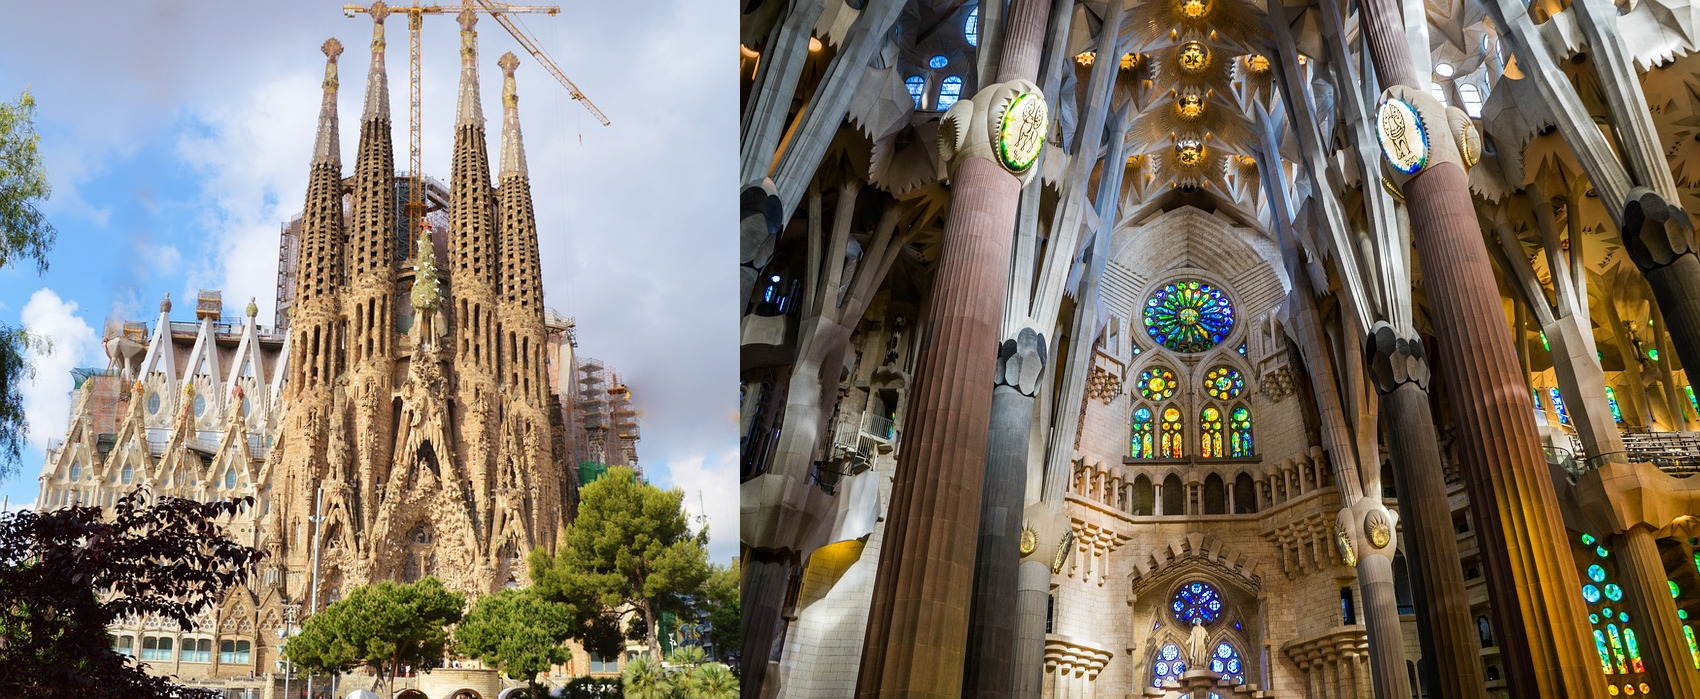 La Sagrada by Gaudi, Barcelona, Spain